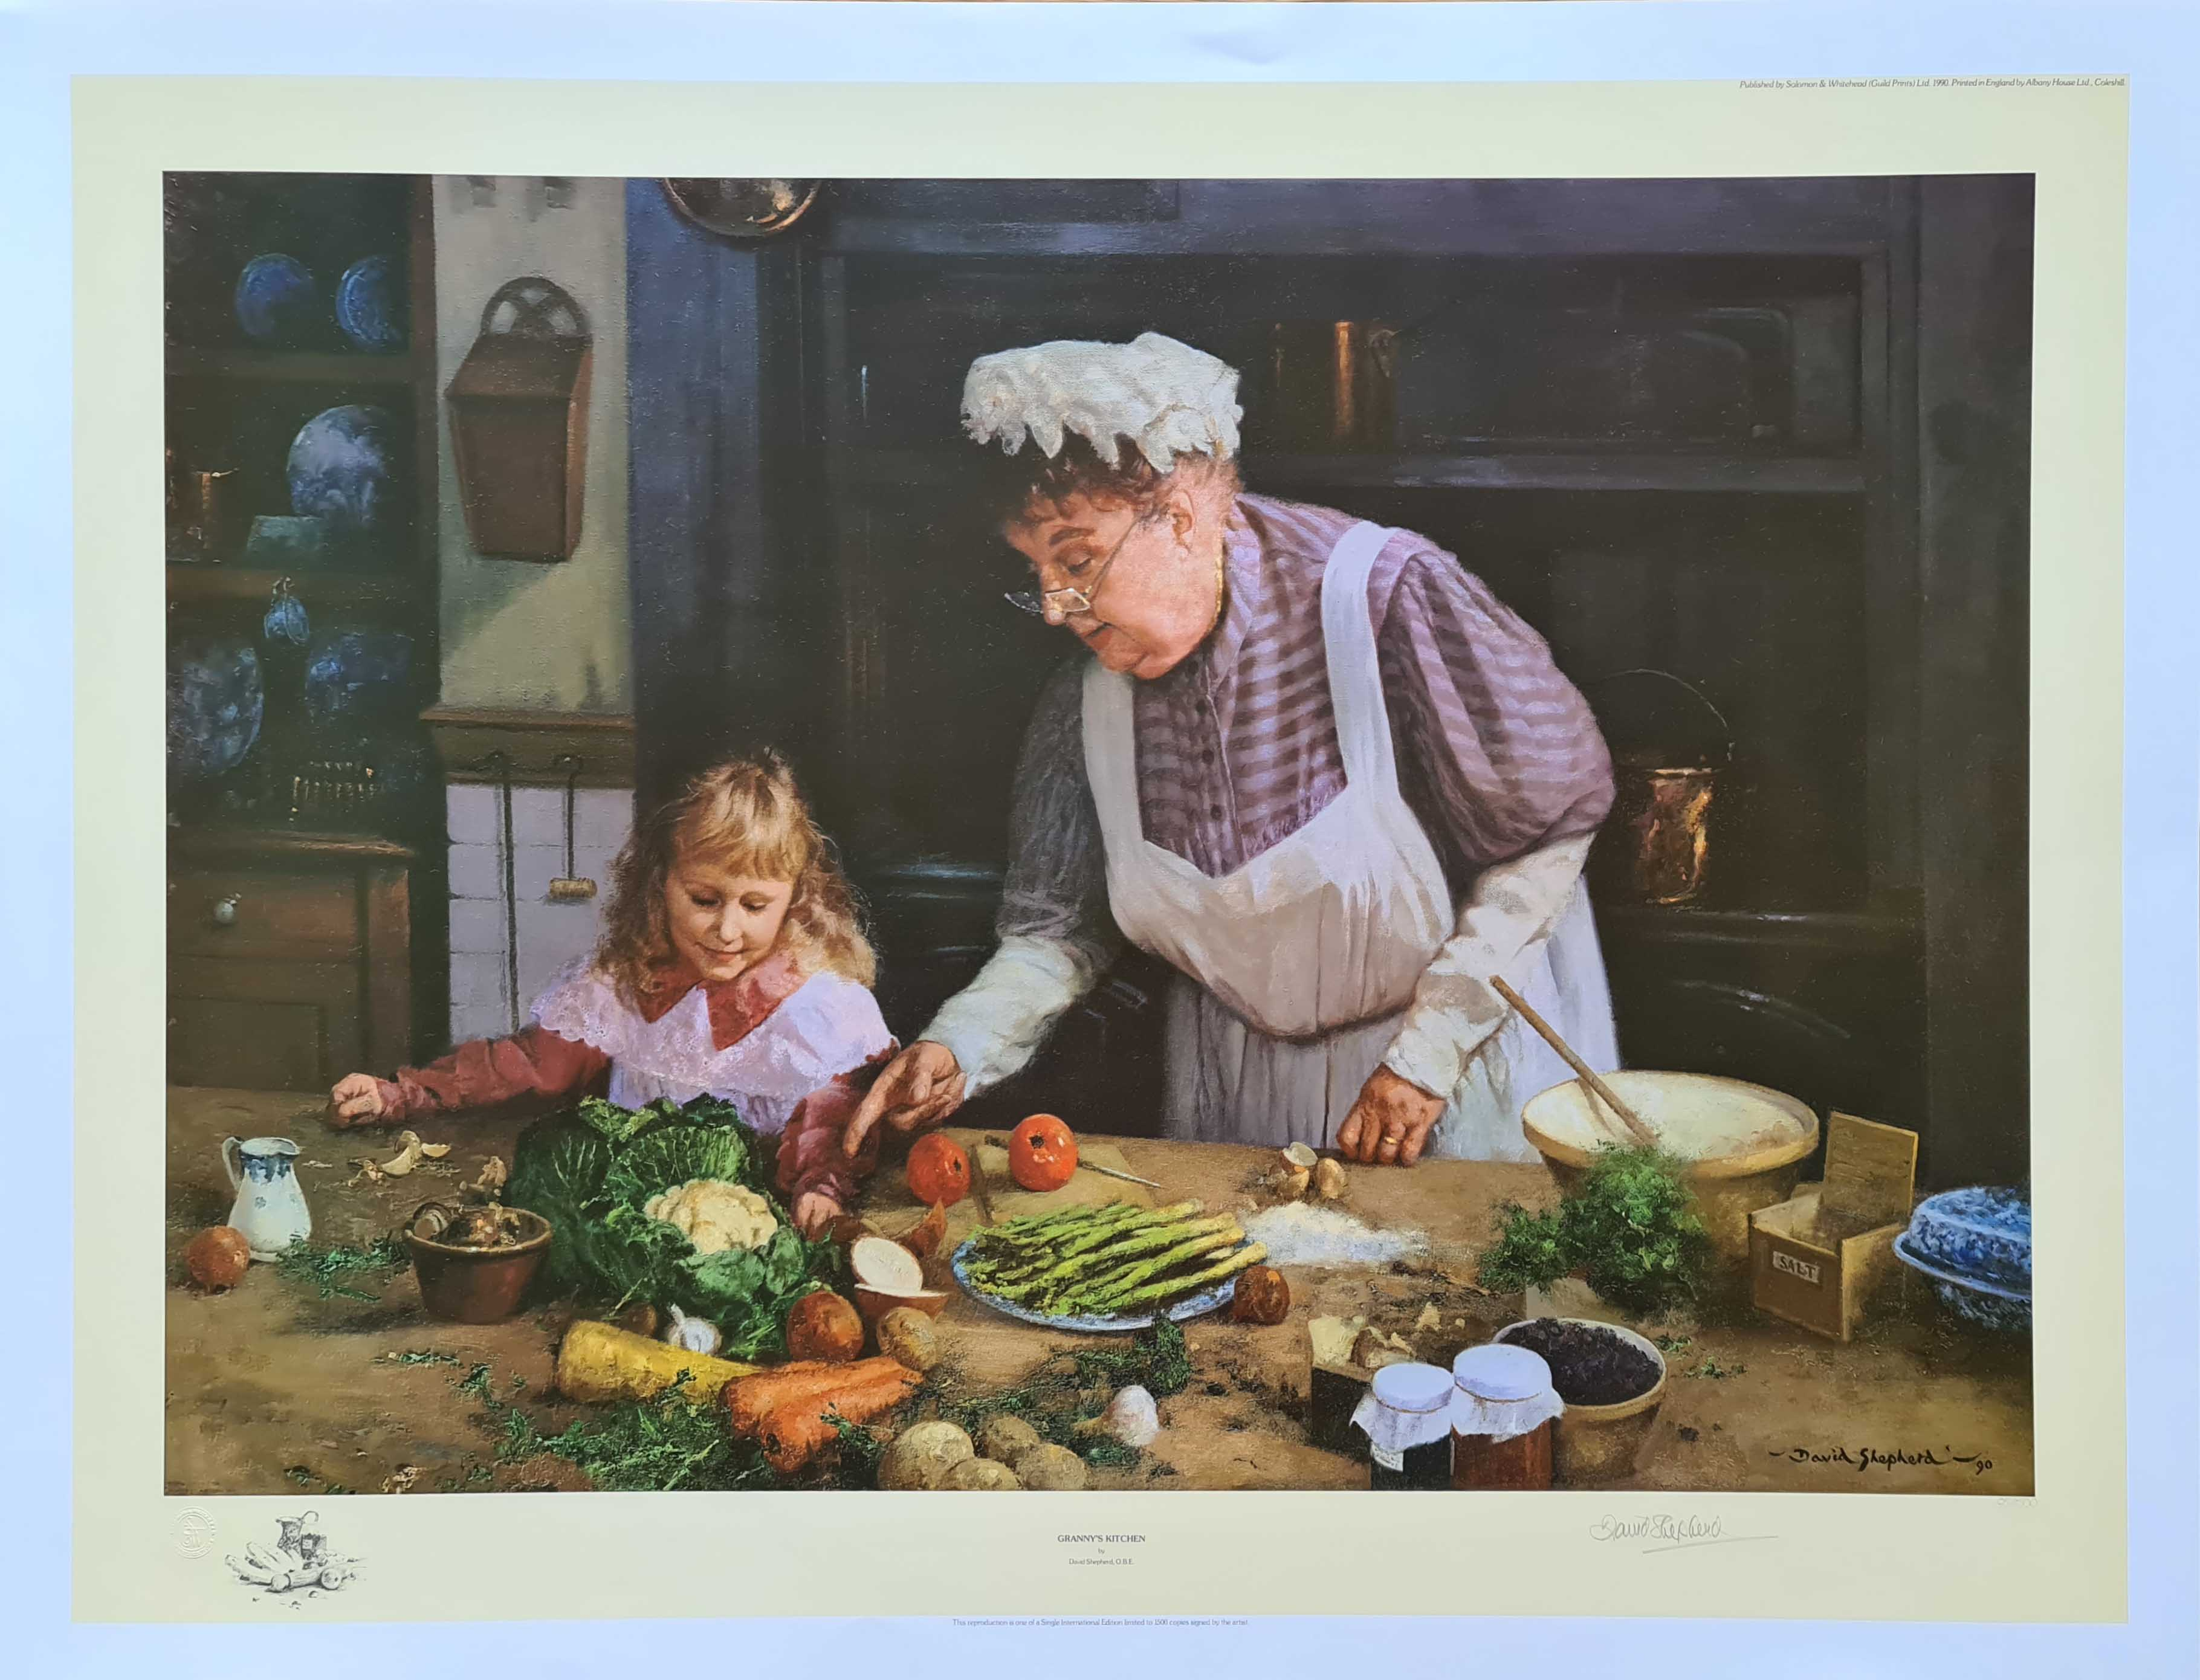 david shepherd, Grannie's Kitchen, signed limited edition print